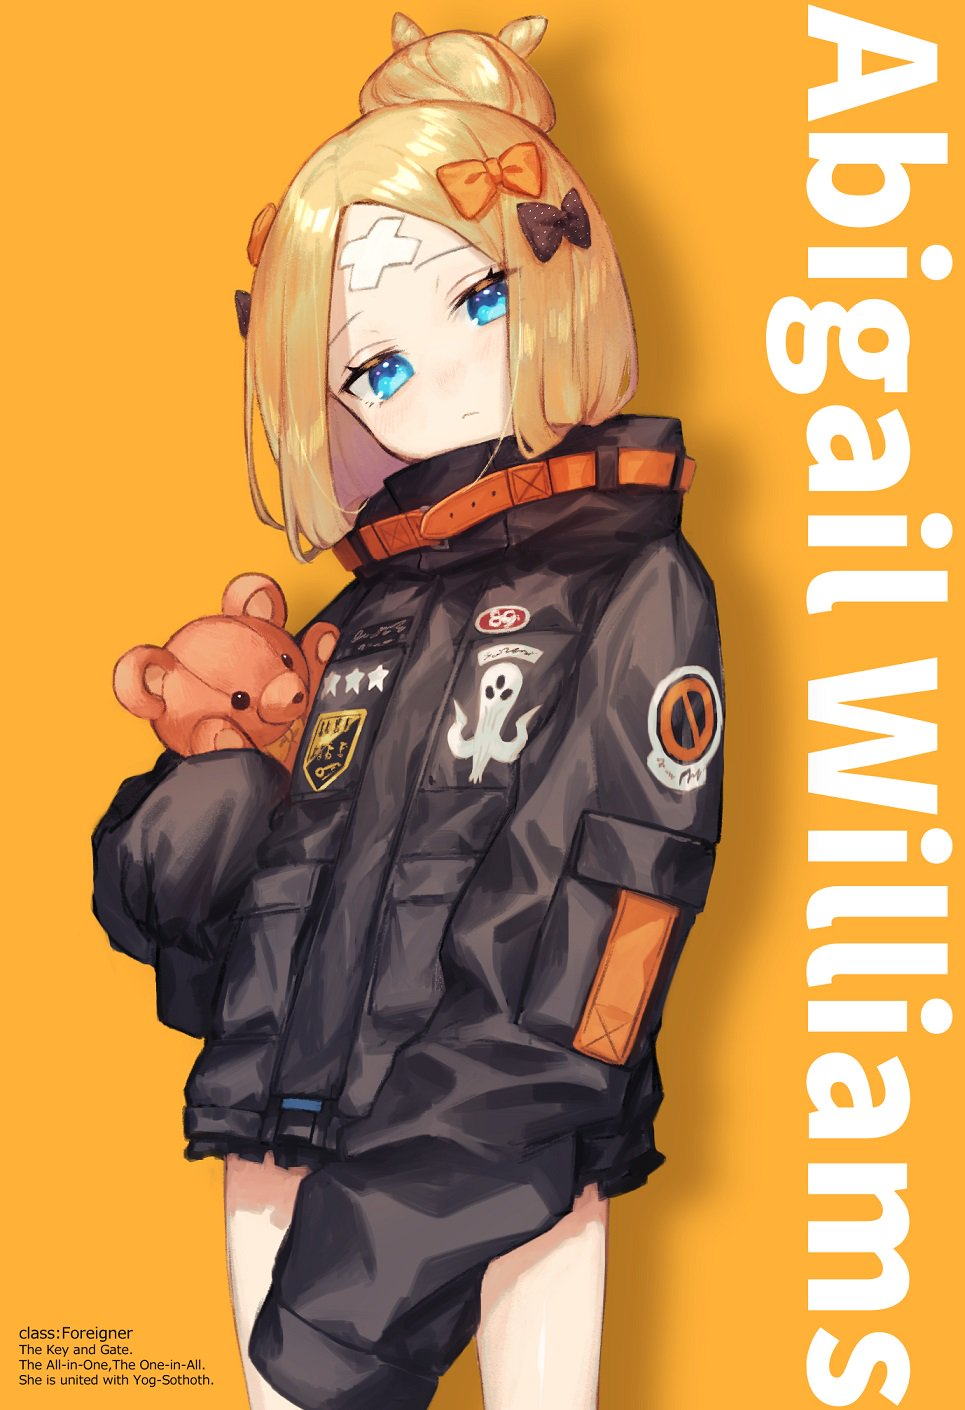 1girl abigail_williams_(fate/grand_order) bangs black_bow black_jacket blue_eyes bow fate/grand_order fate_(series) highres jacket looking_at_viewer orange_bow parted_bangs polka_dot polka_dot_bow sleeves_past_fingers sleeves_past_wrists stuffed_animal stuffed_toy teddy_bear usuke_(u_skeeep)